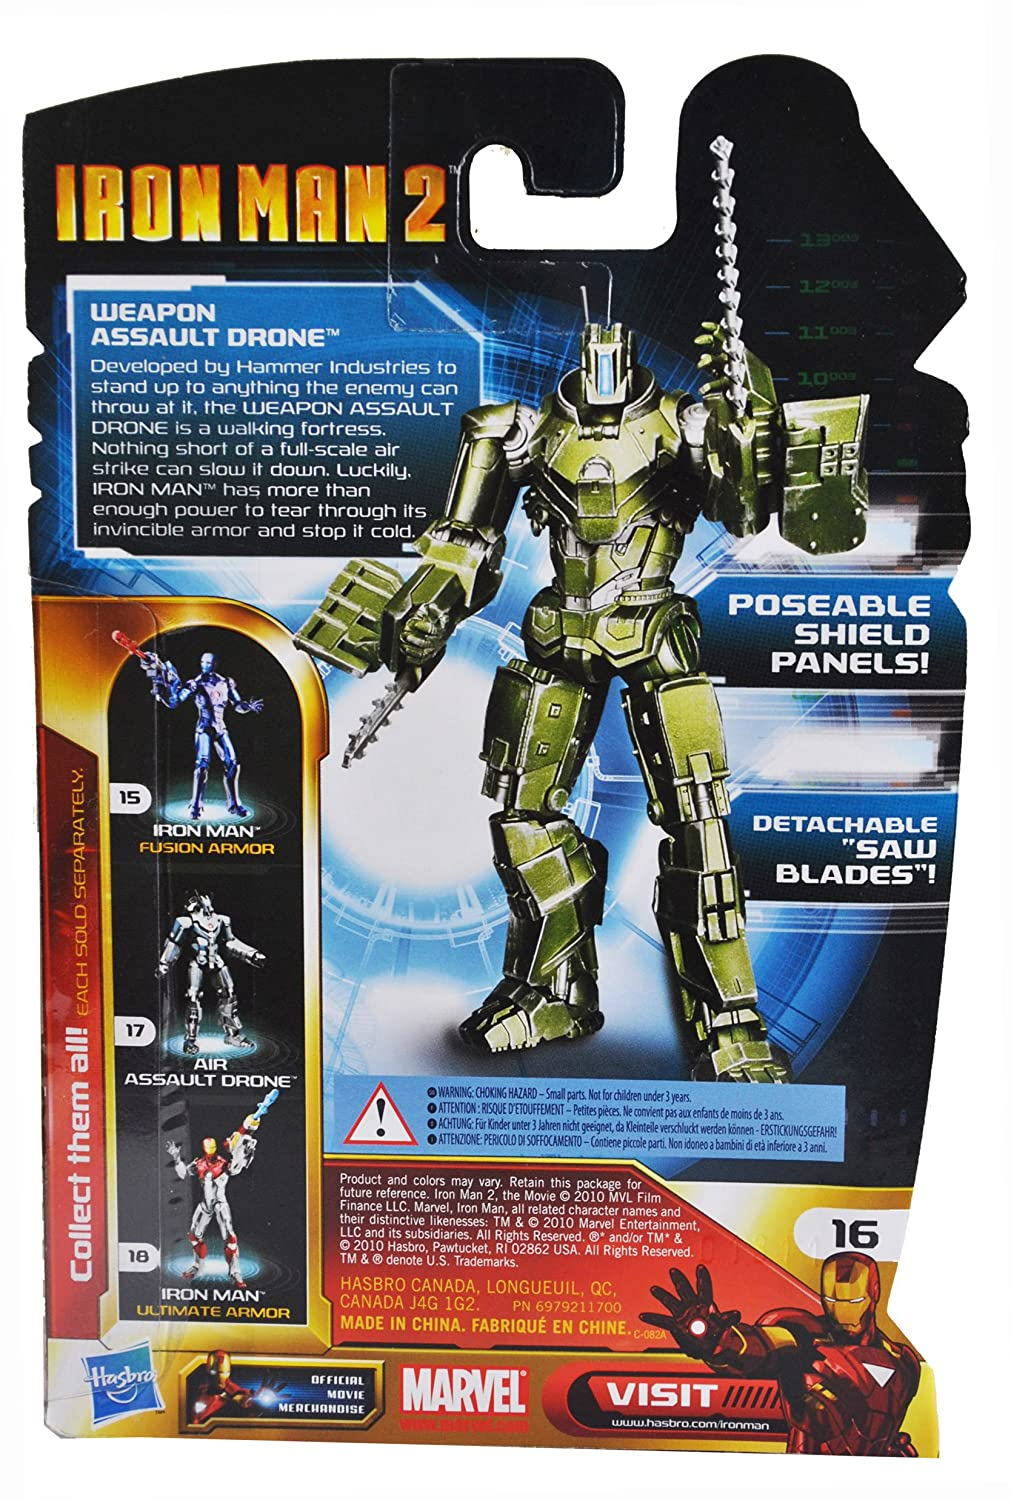 Iron Man 2 Concept Series 4 Inch Action Figure Weapon Assault Drone Hasbro 94176